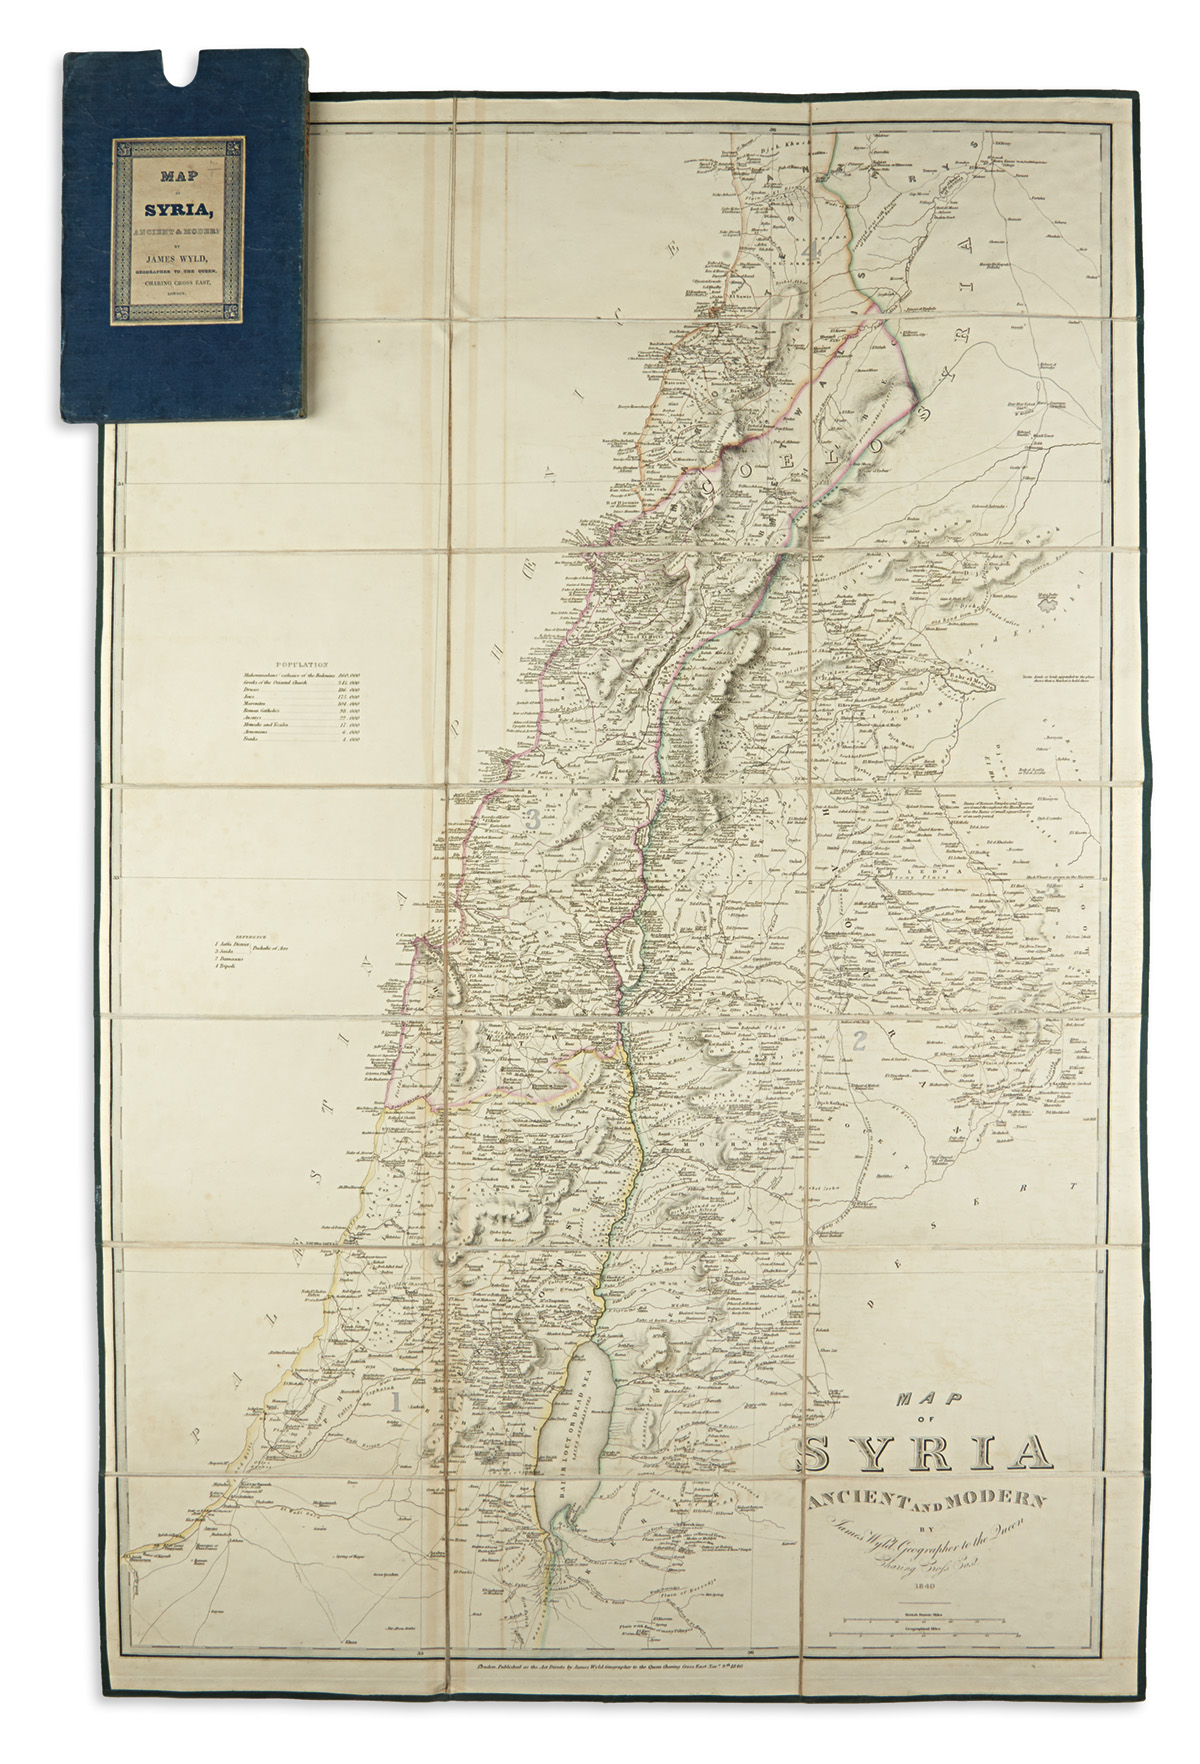 WYLD-JAMES-Map-of-Syria-Ancient-and-Modern